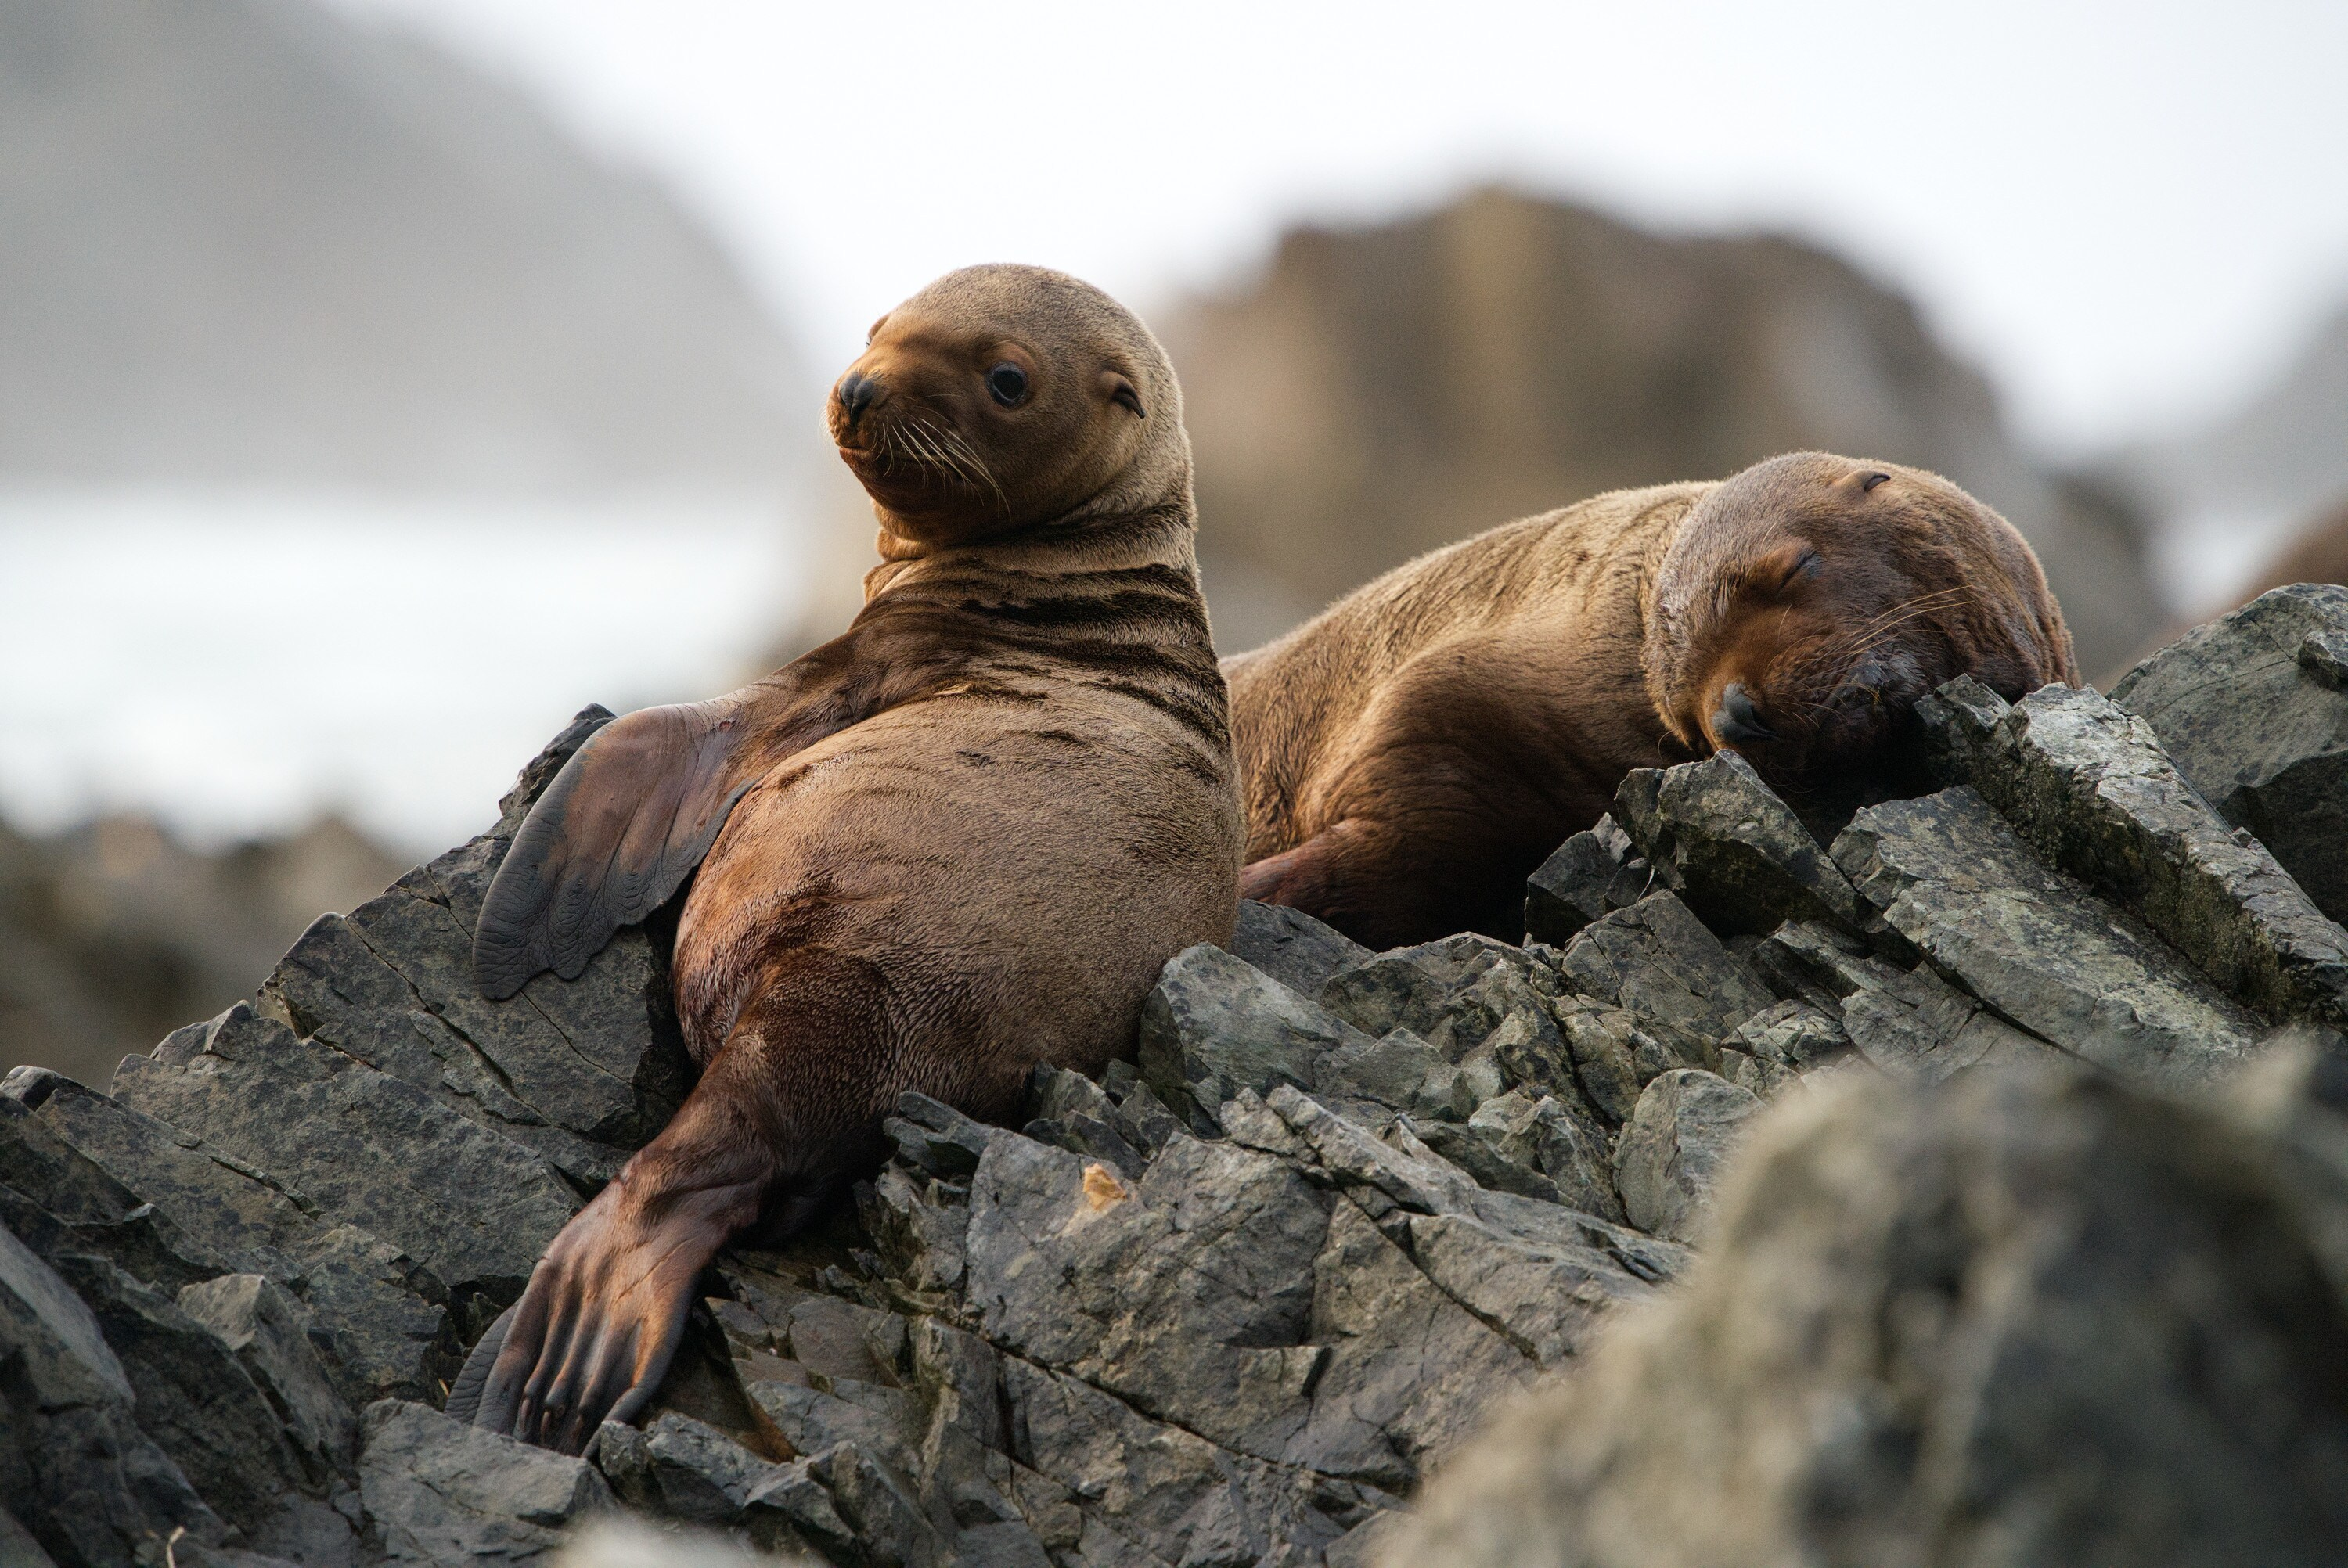 Luna and another pup on the rocks, Triangle Island. (National Geographic for Disney+/Ryan Tidman)